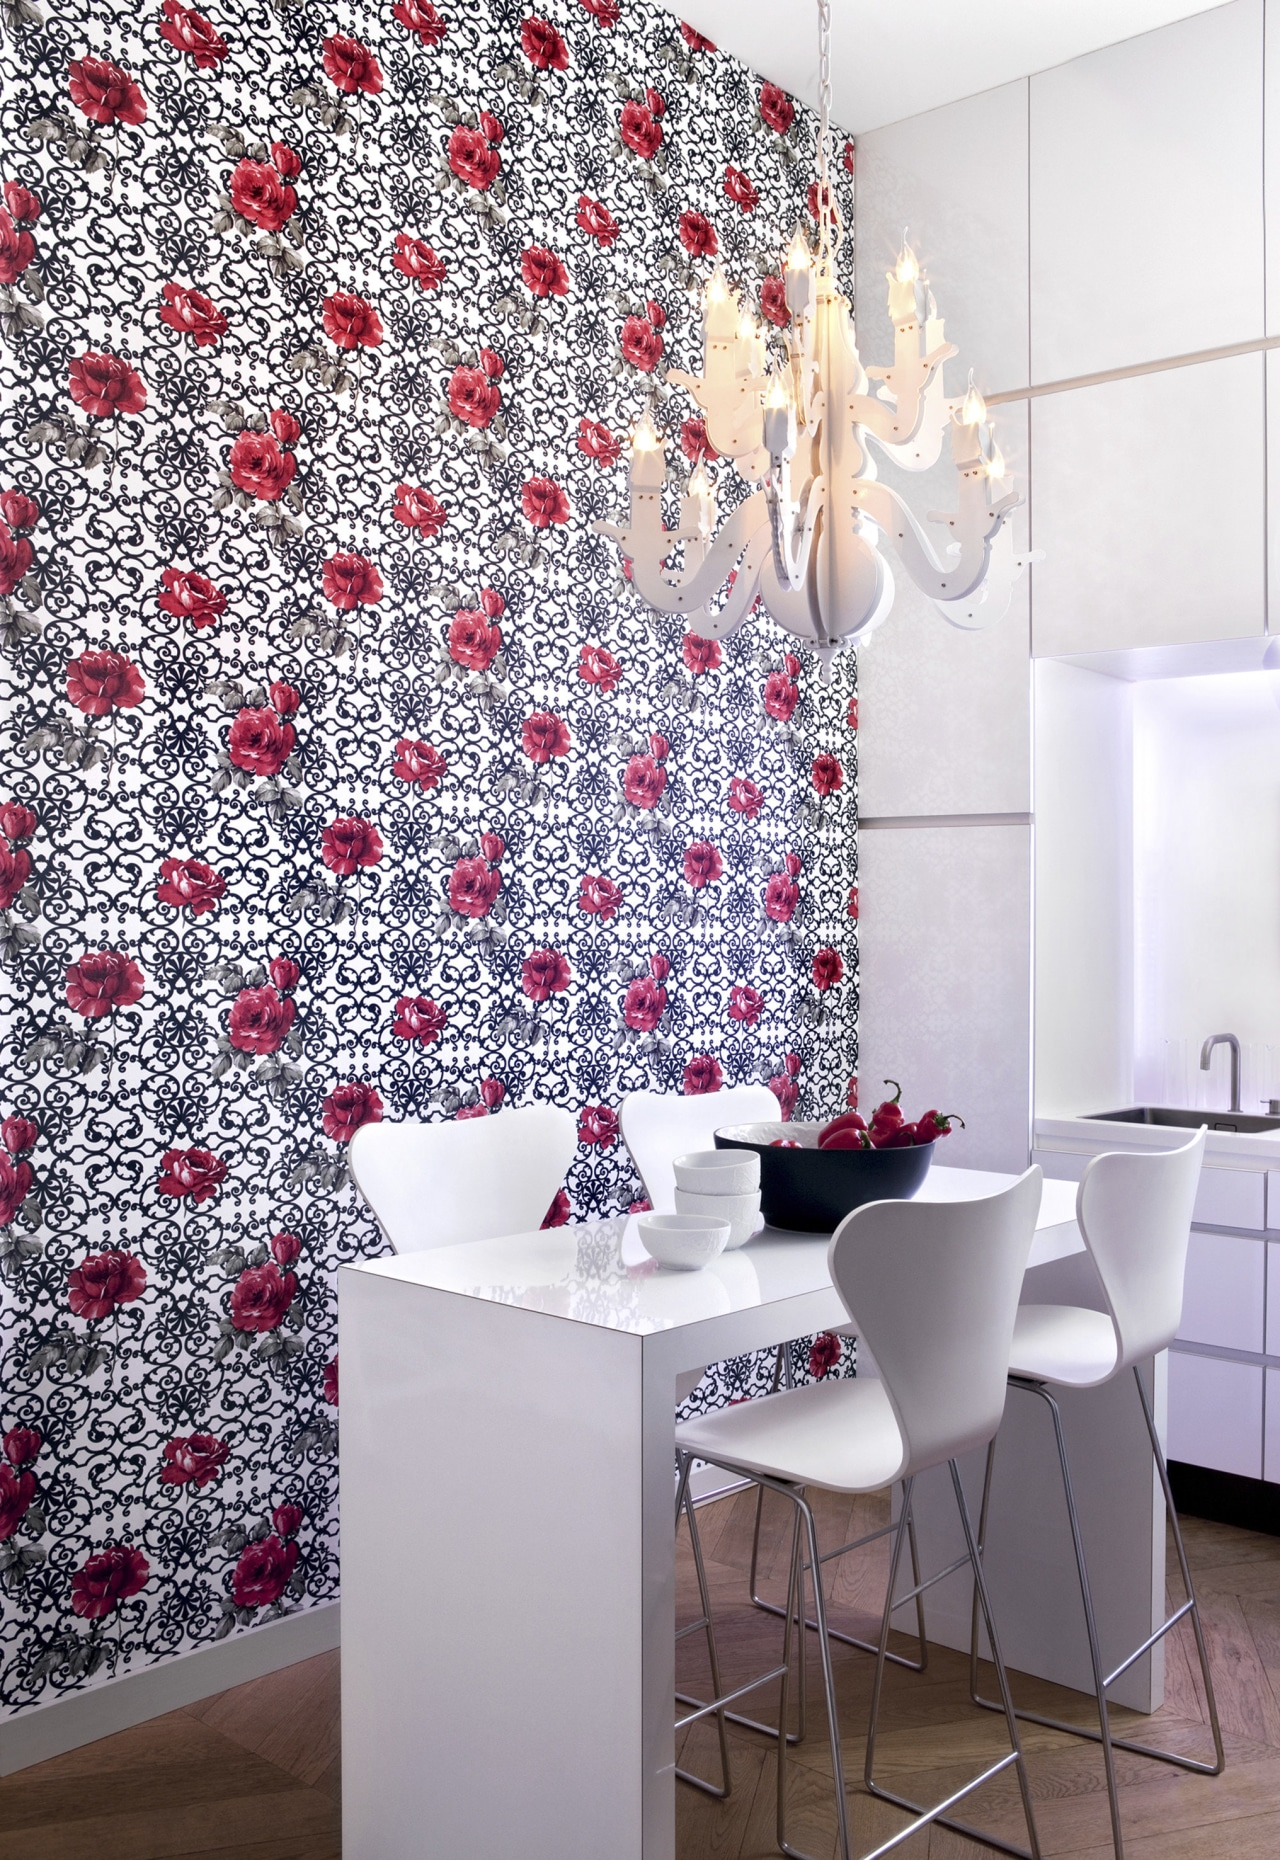 This wallpaper was supplied and designed by Pacific flooring, interior design, room, tile, wall, wallpaper, white